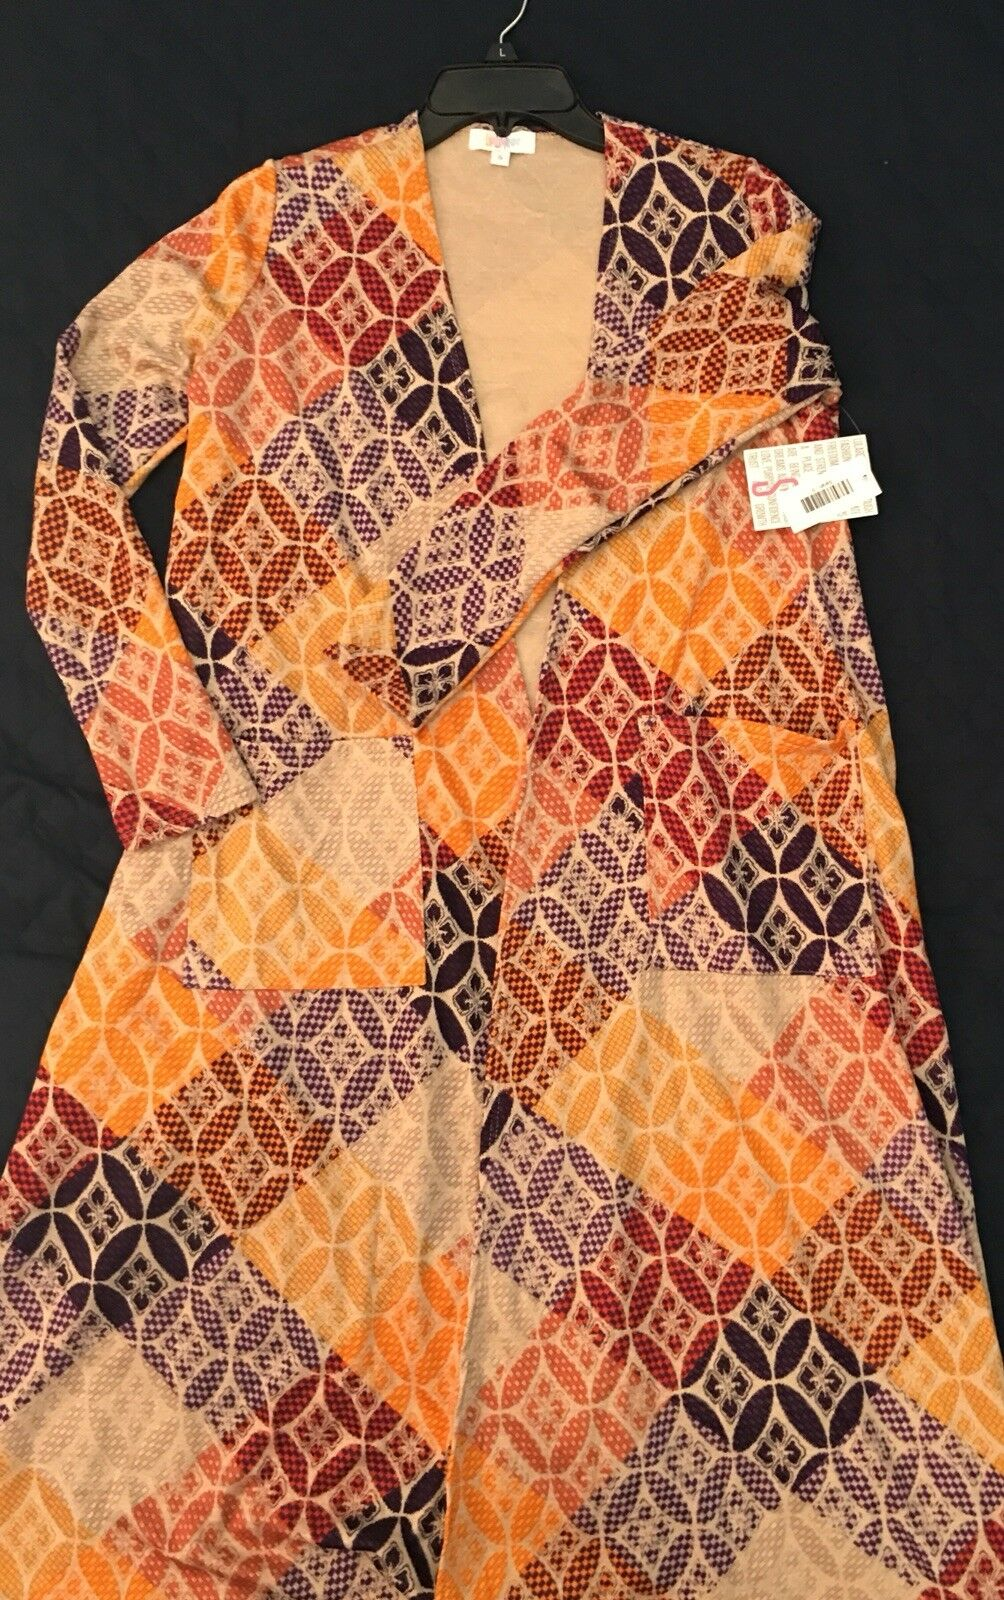 BNWT Lularoe Sarah Long Cardigan, Lightweight, Size Small UNICORN